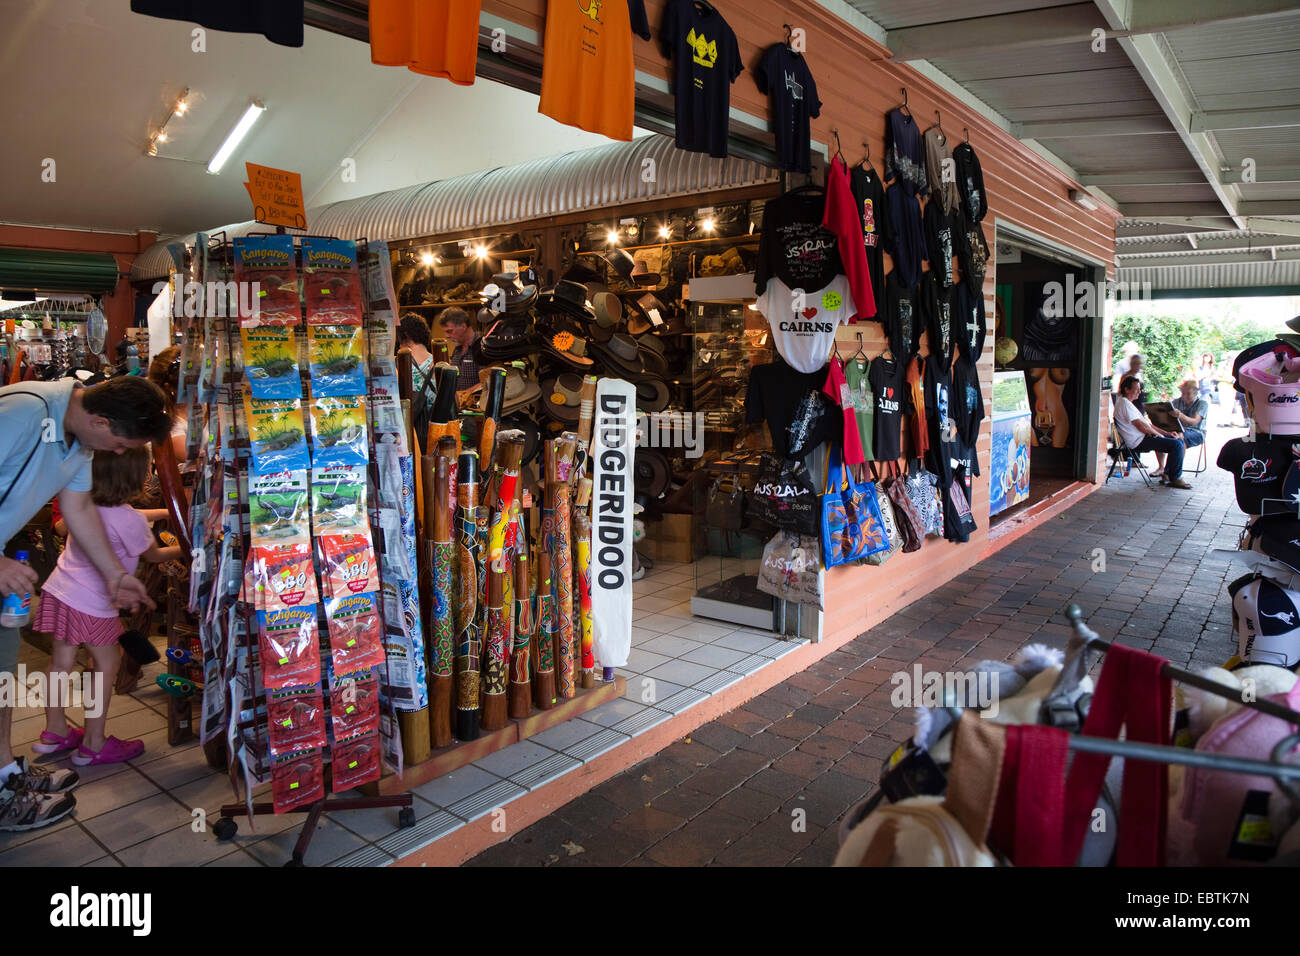 Didgeridoo Shop of Kuranda Original Rainforest Markets, Australia, Queensland - Stock Image